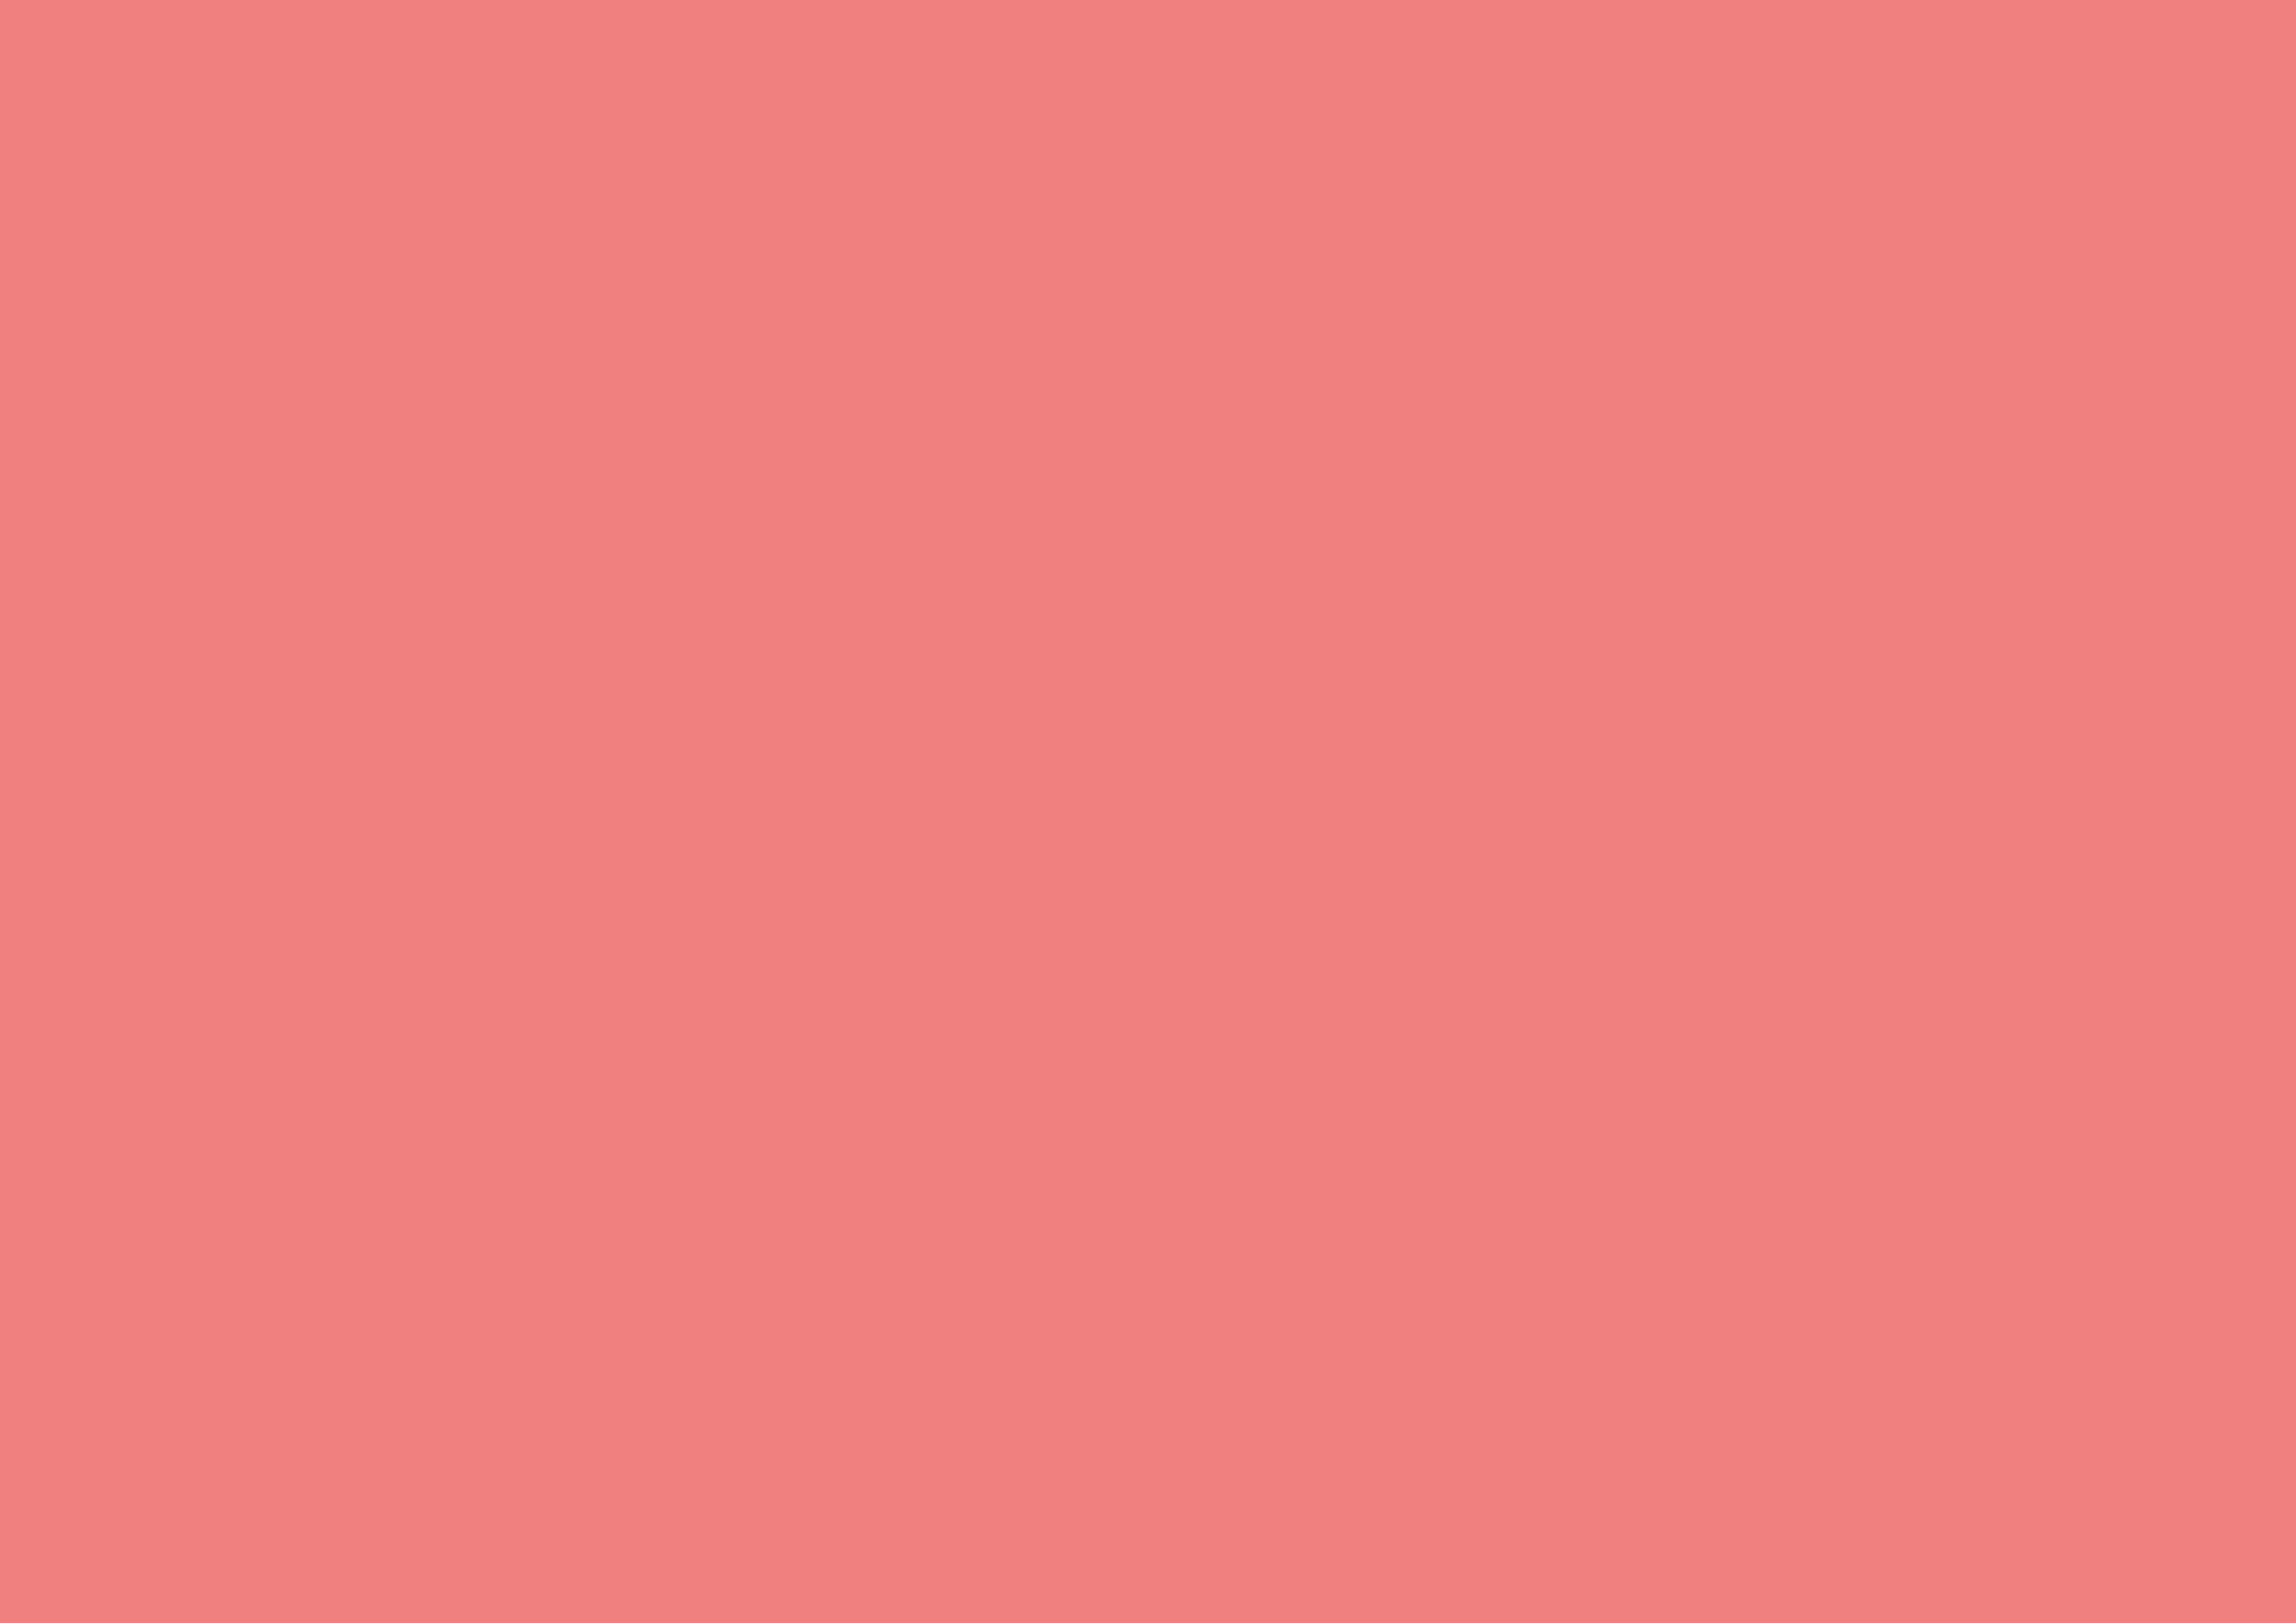 3508x2480 Light Coral Solid Color Background